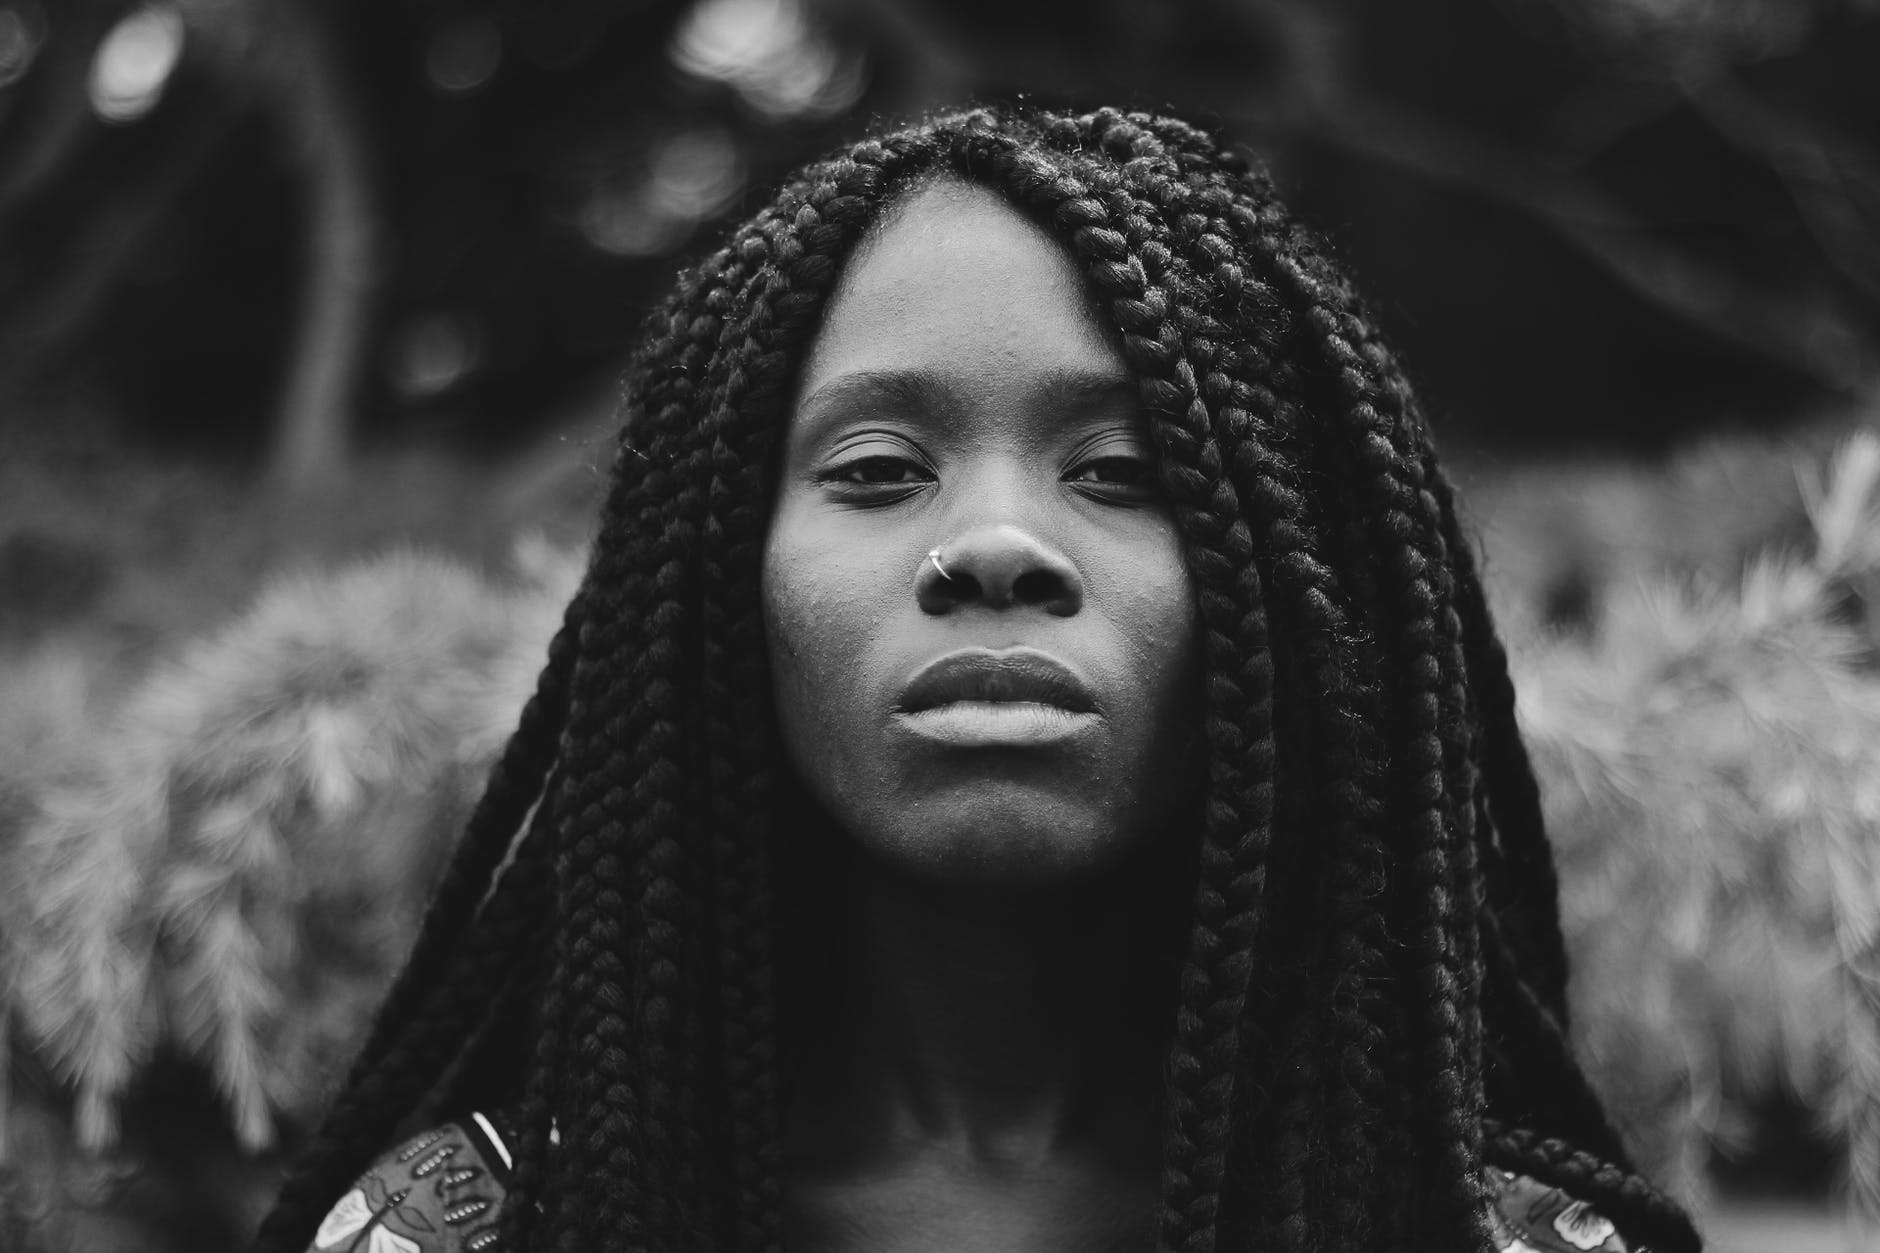 grayscale photo of braided hair woman